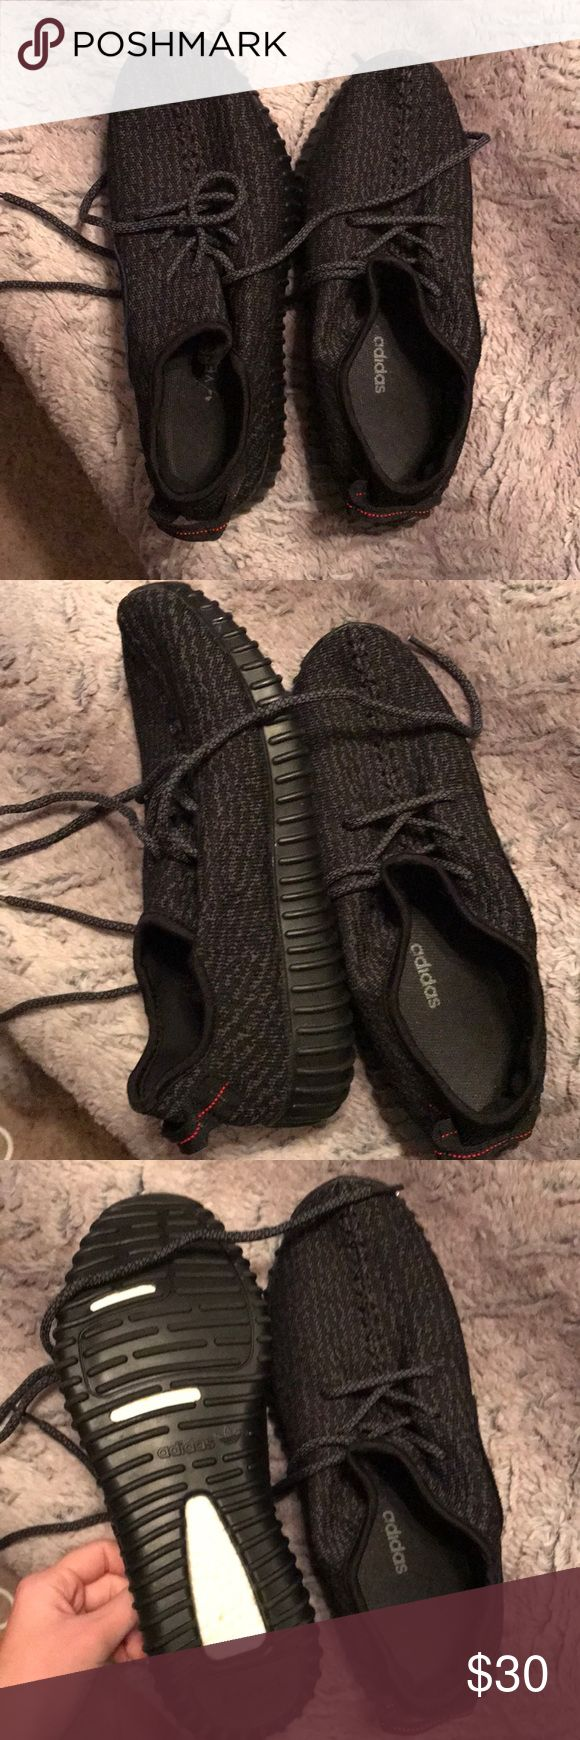 not authentic black yeezys not authentic  black yeezys size 8.5 worn once adidas Shoes Sneakers